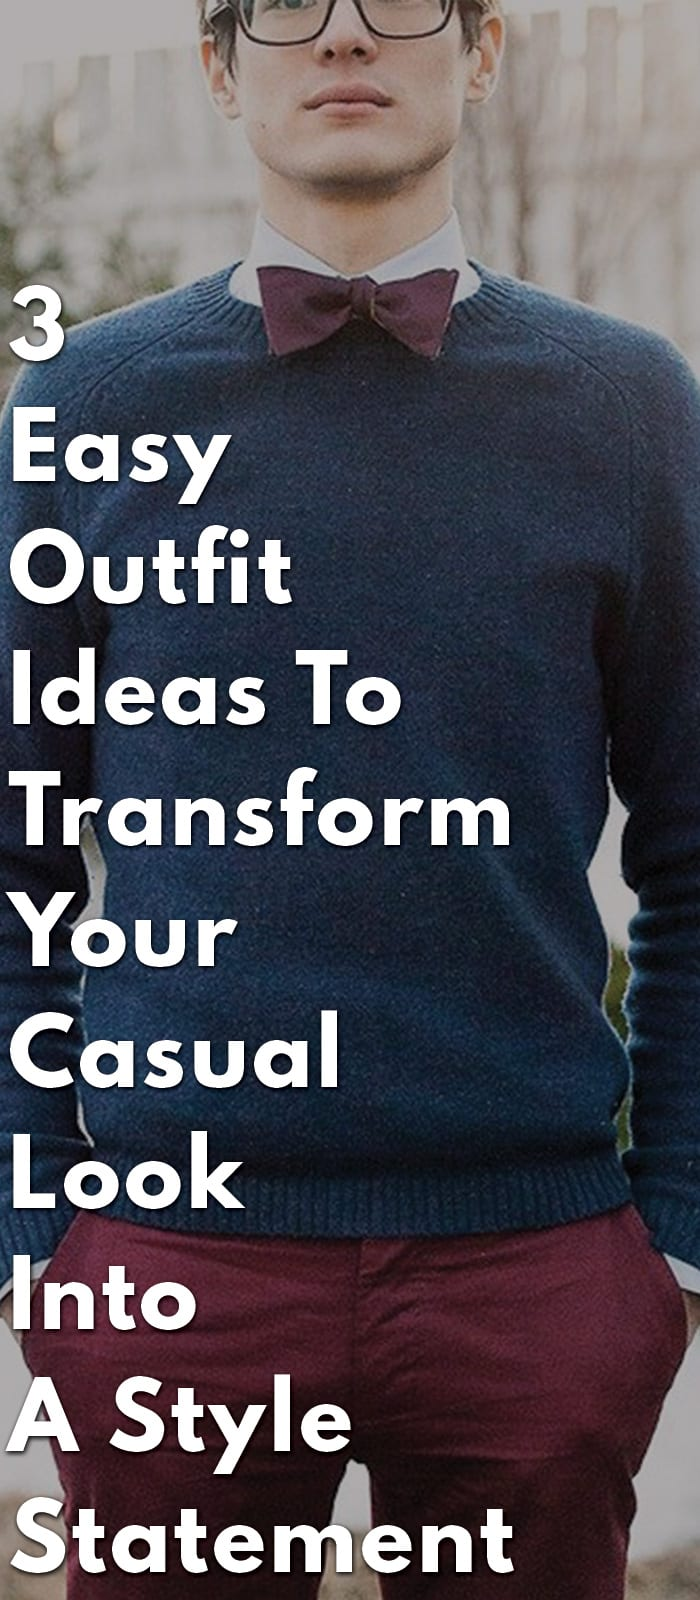 3-Easy-Outfit-Ideas-To-Transform-Your-Casual-Look-Into-A-Style-Statement